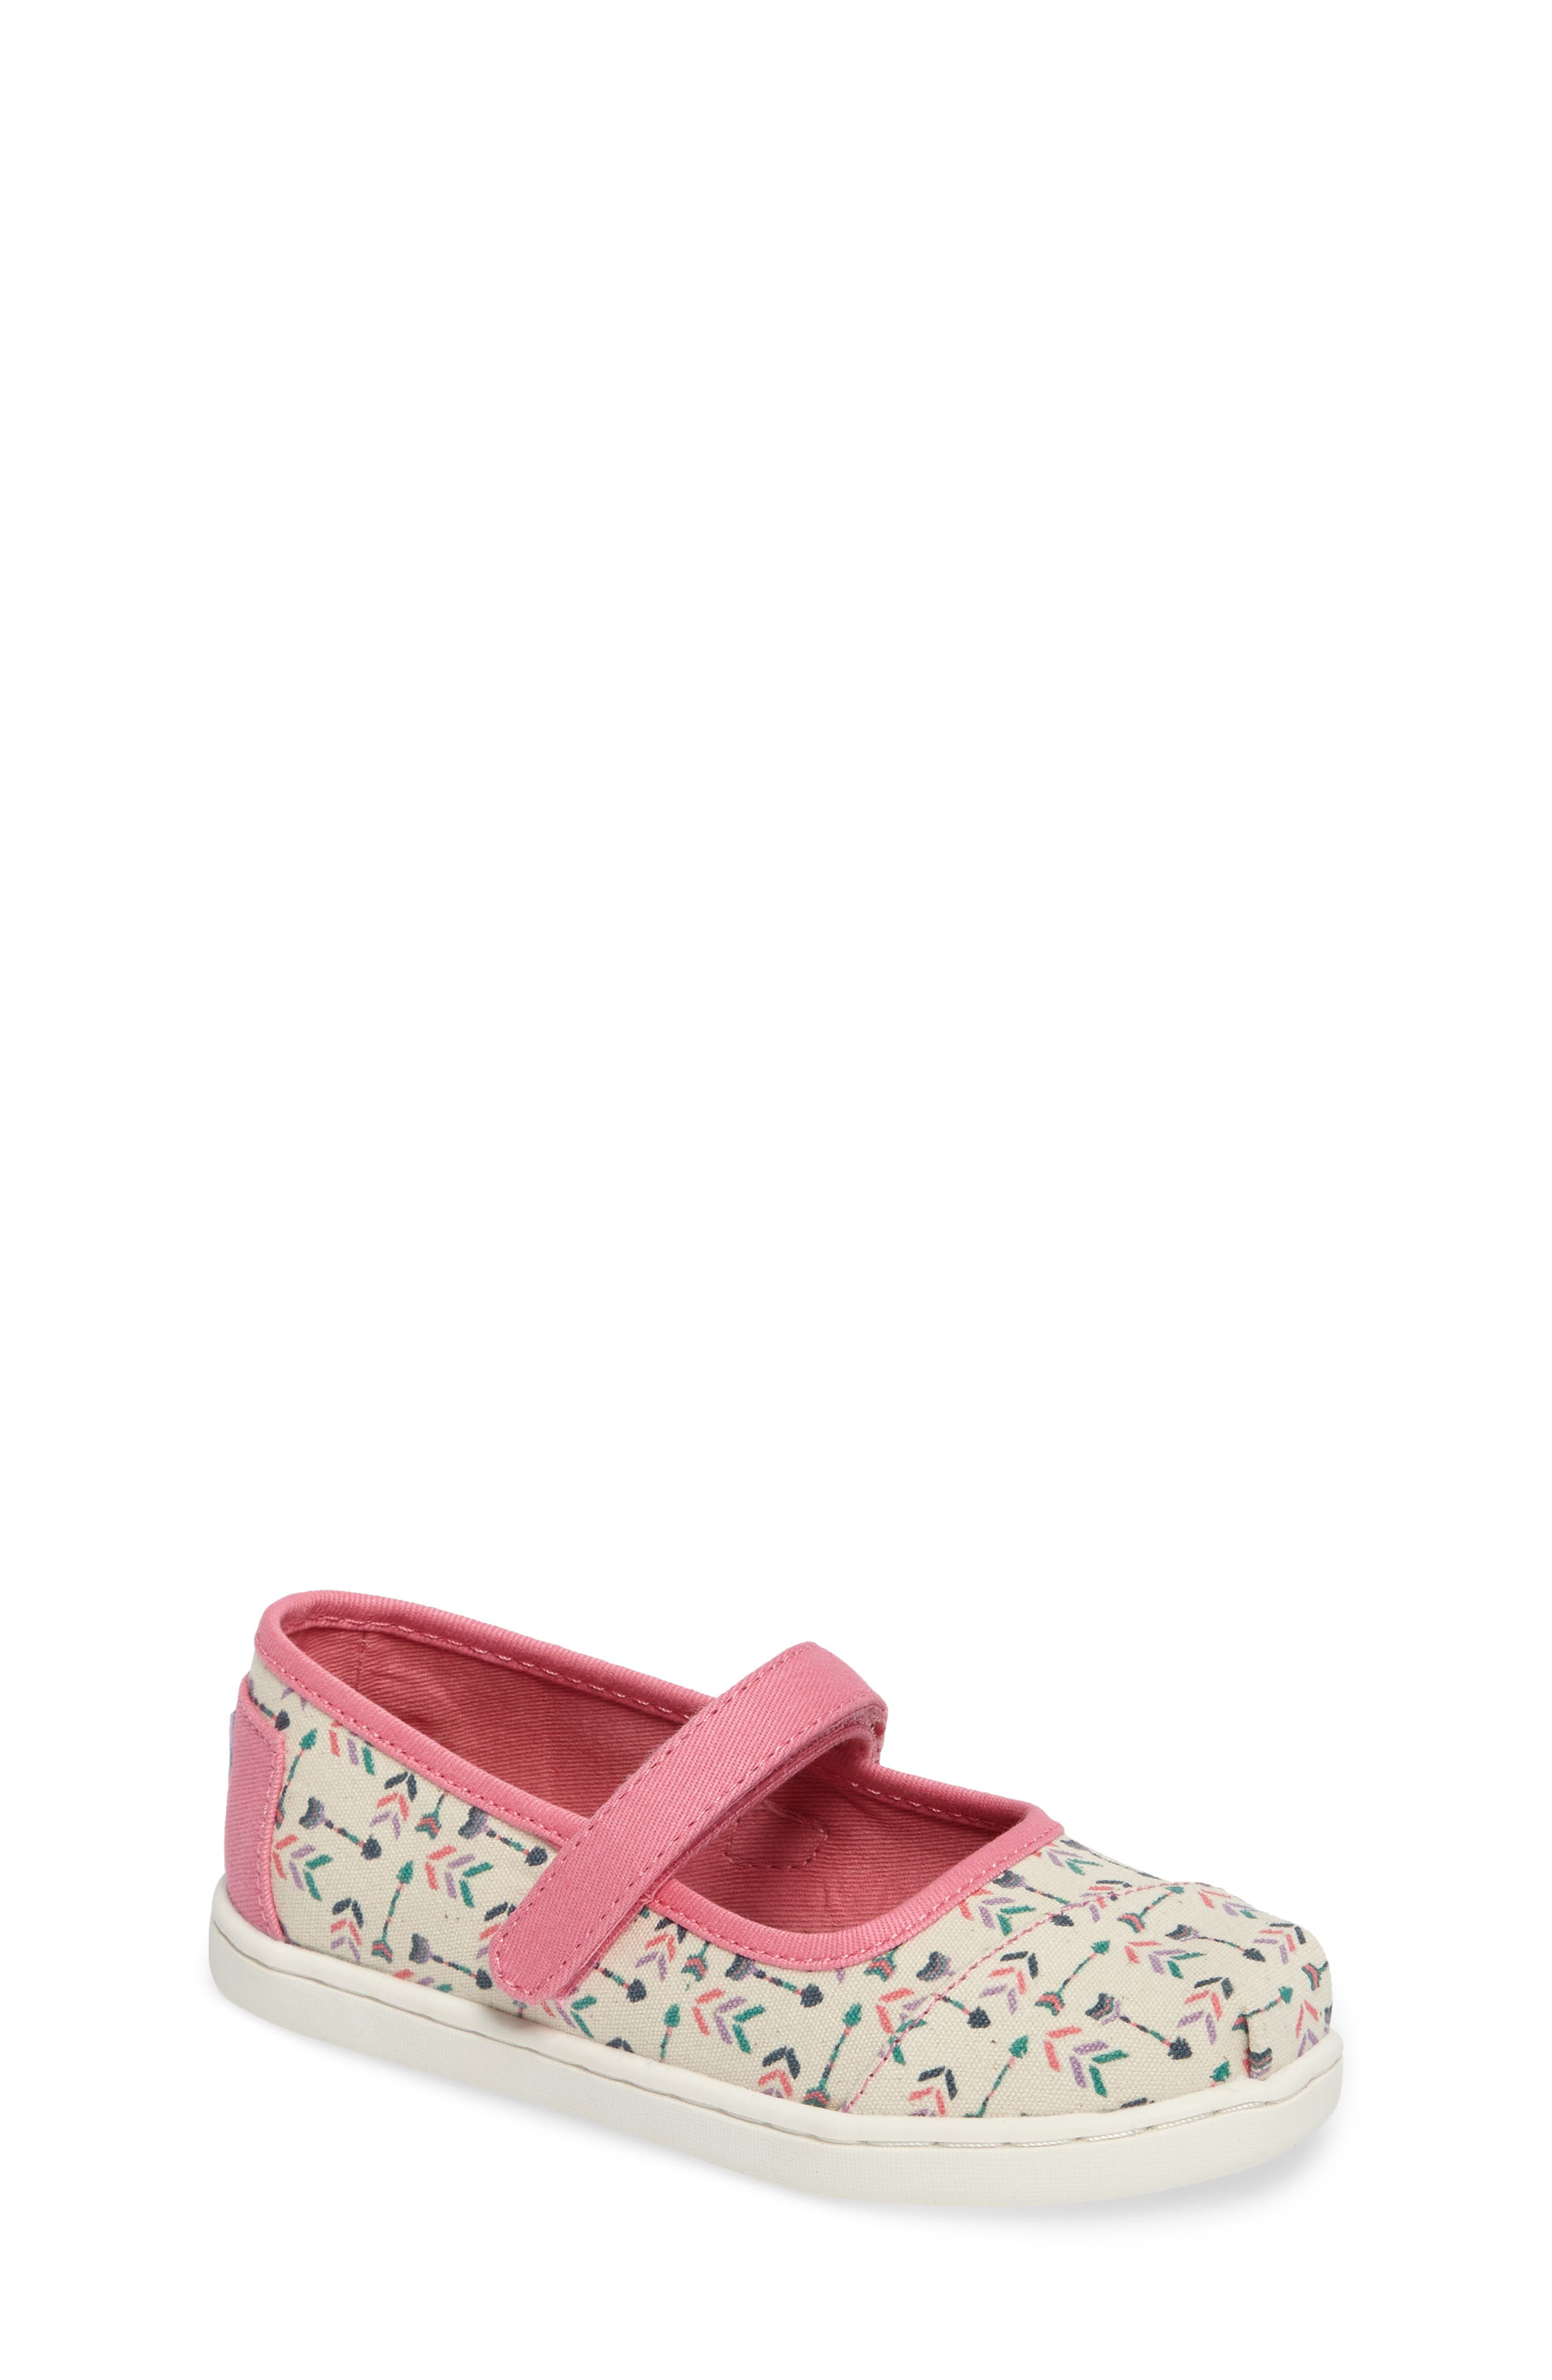 TOMS Arrow Print Mary Jane Flat (Baby, Walker & Toddler)